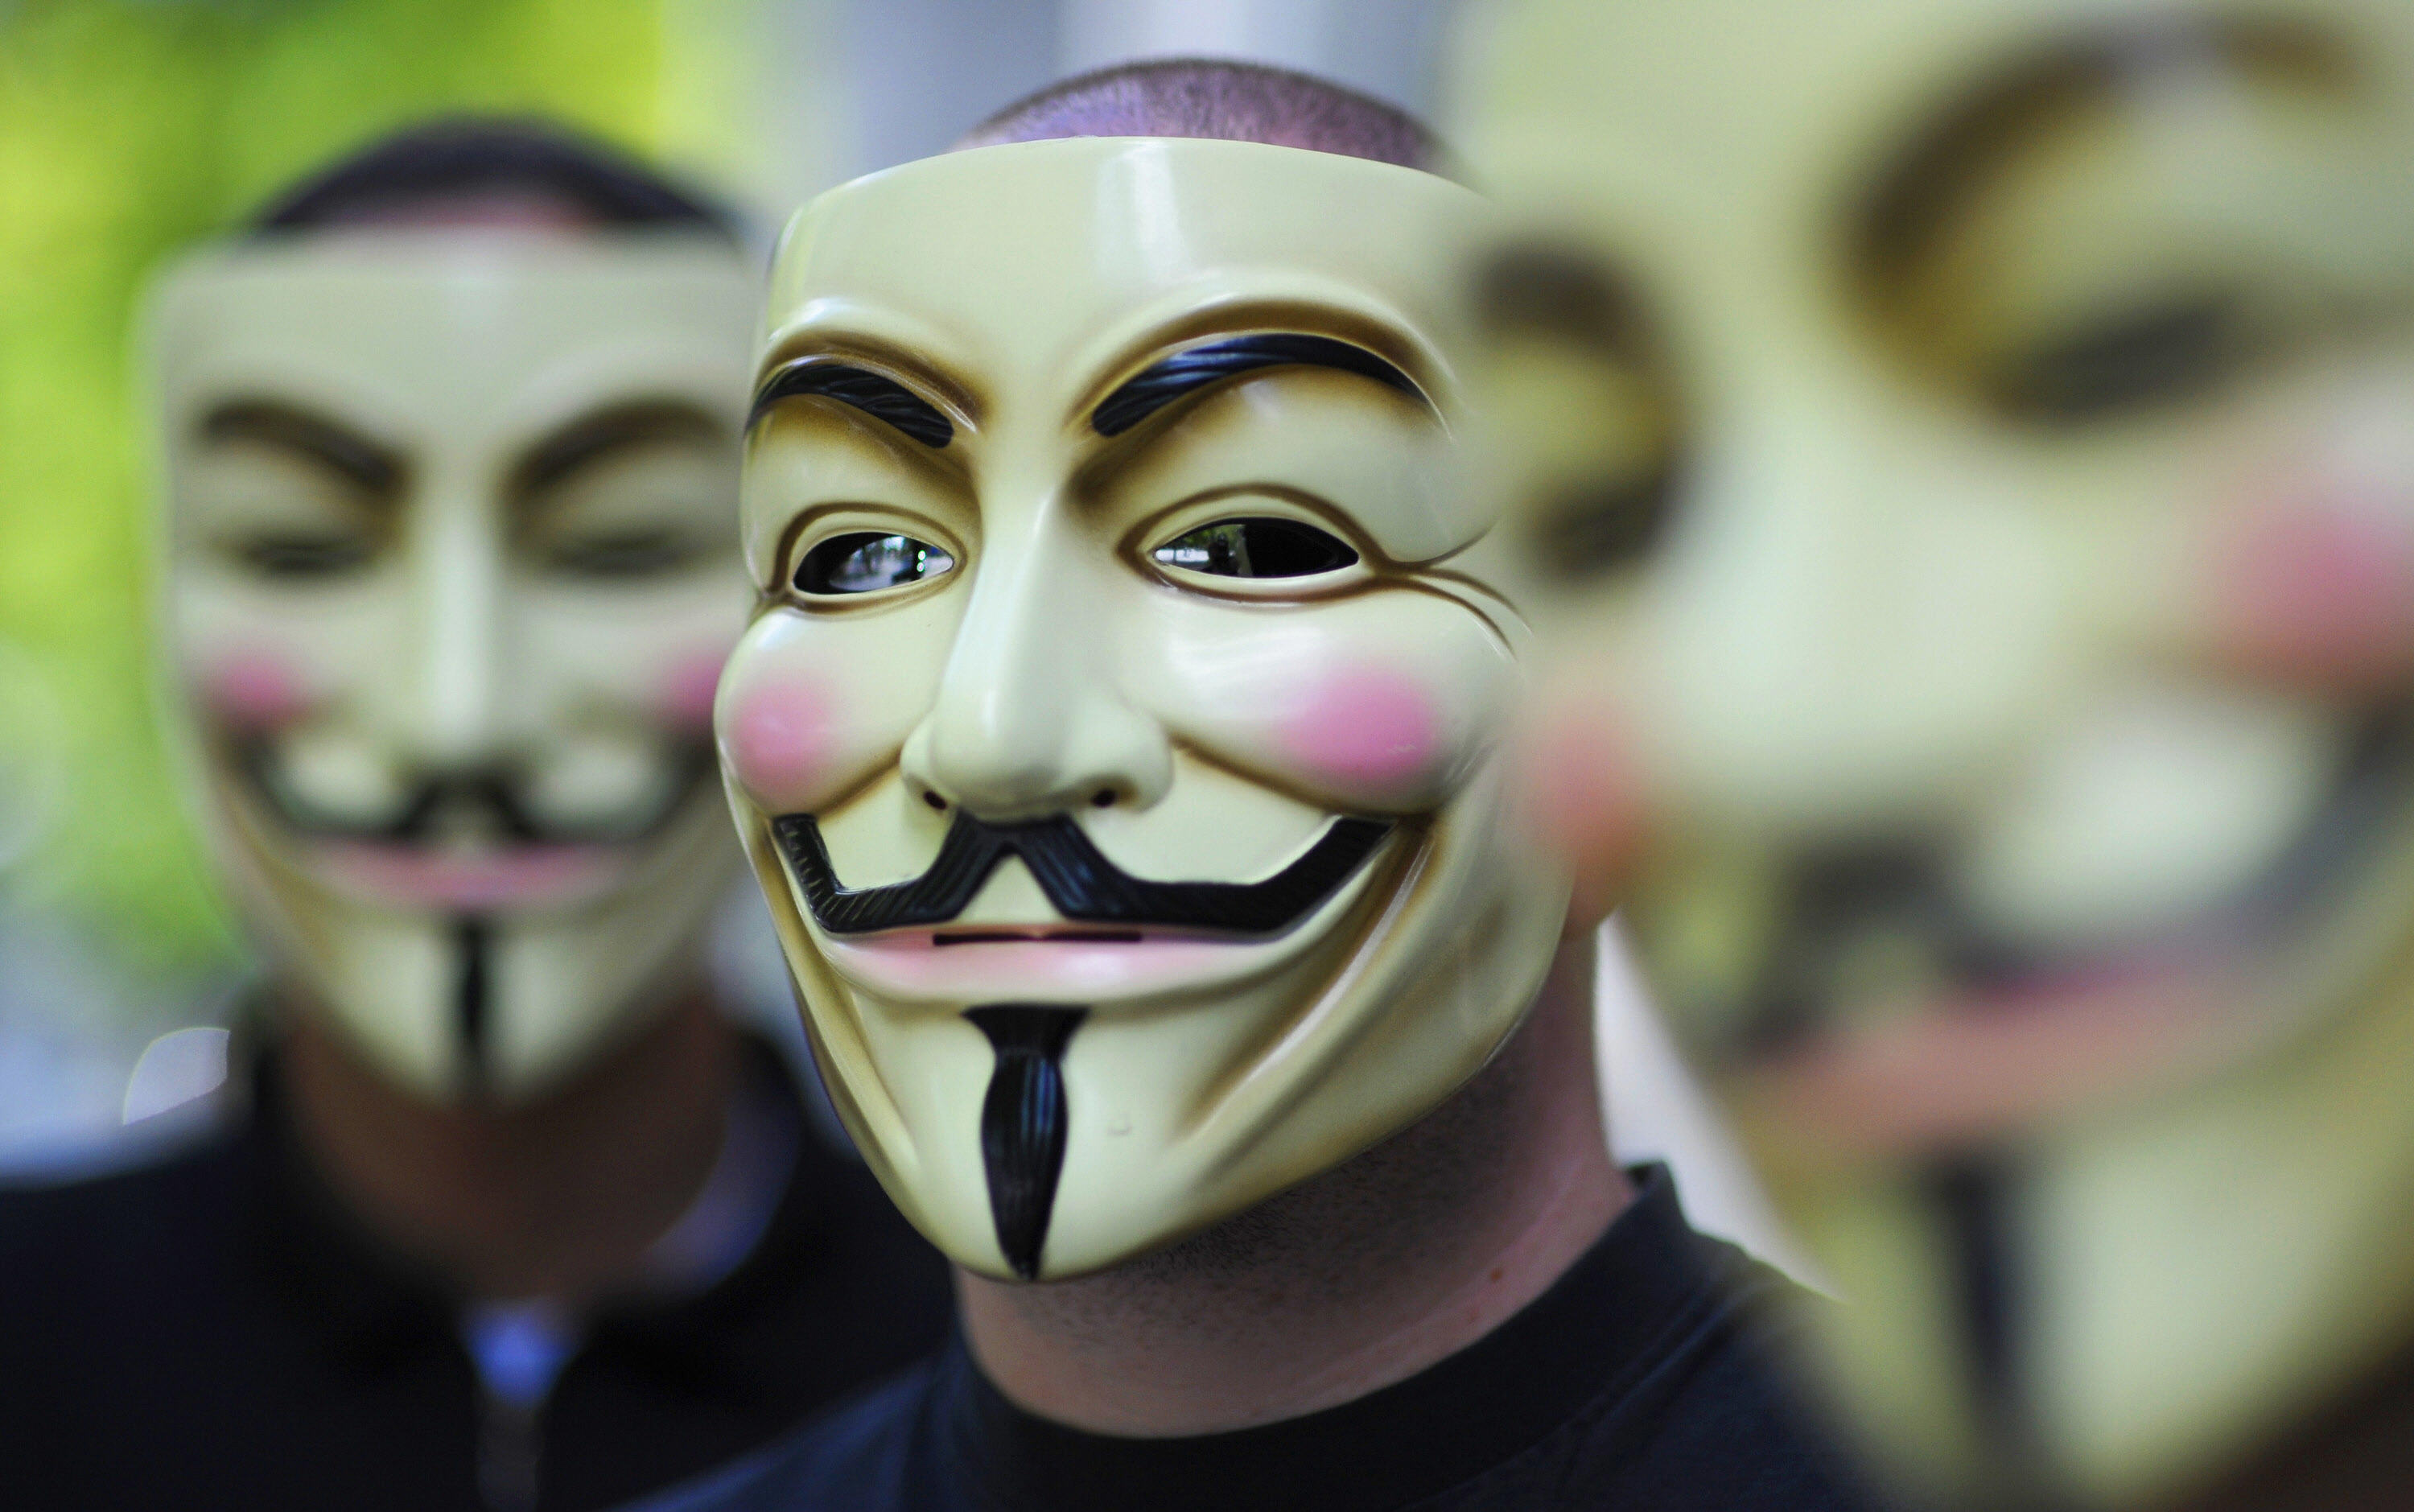 Anonymous drops names of KKK members online, including US politicians